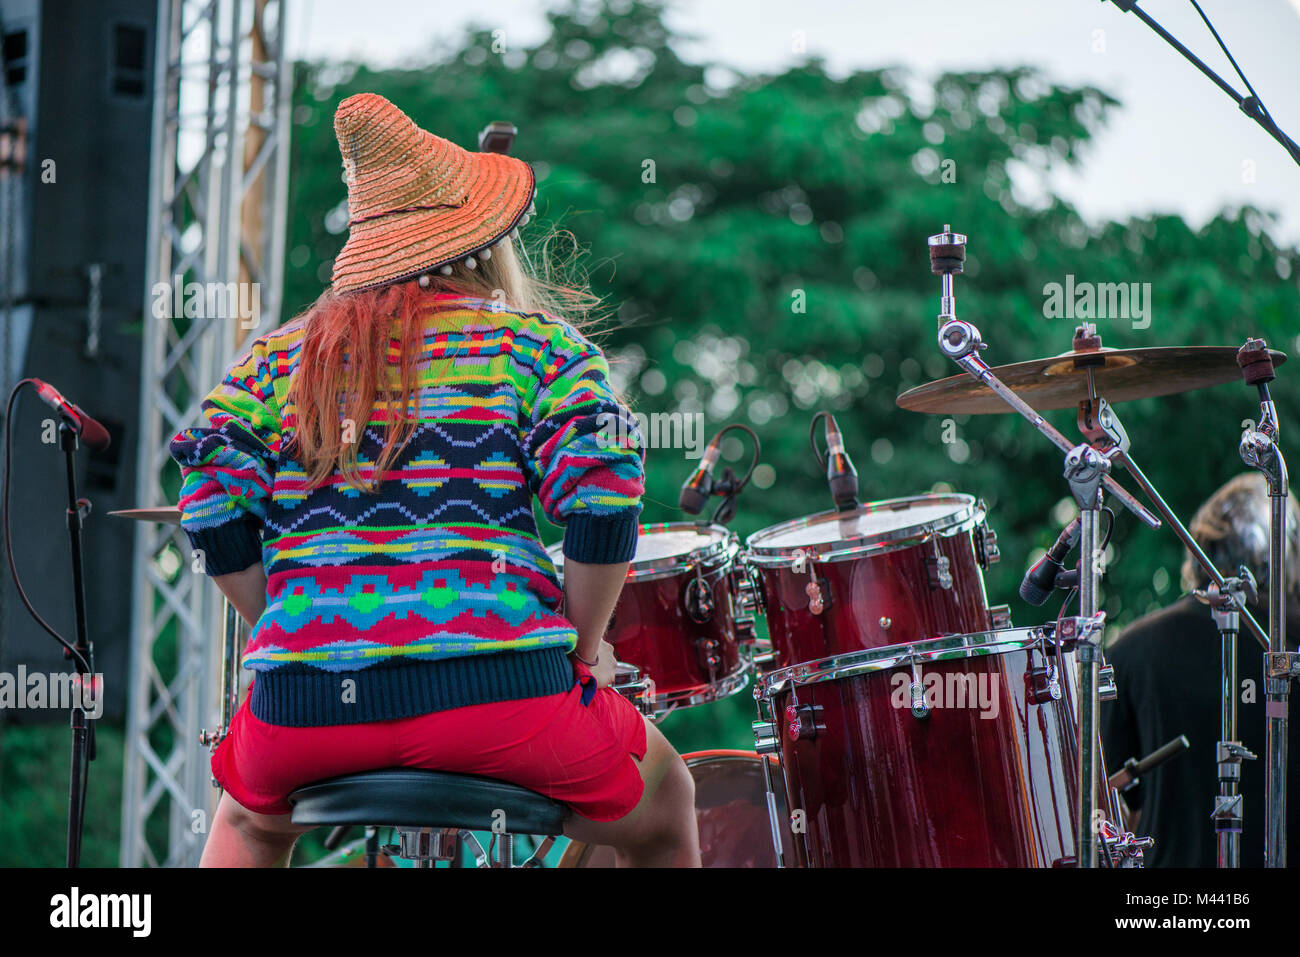 Shot of a girl with colorful clothes and orange hat playing drums on stage during music festival in summer. Band - Stock Image